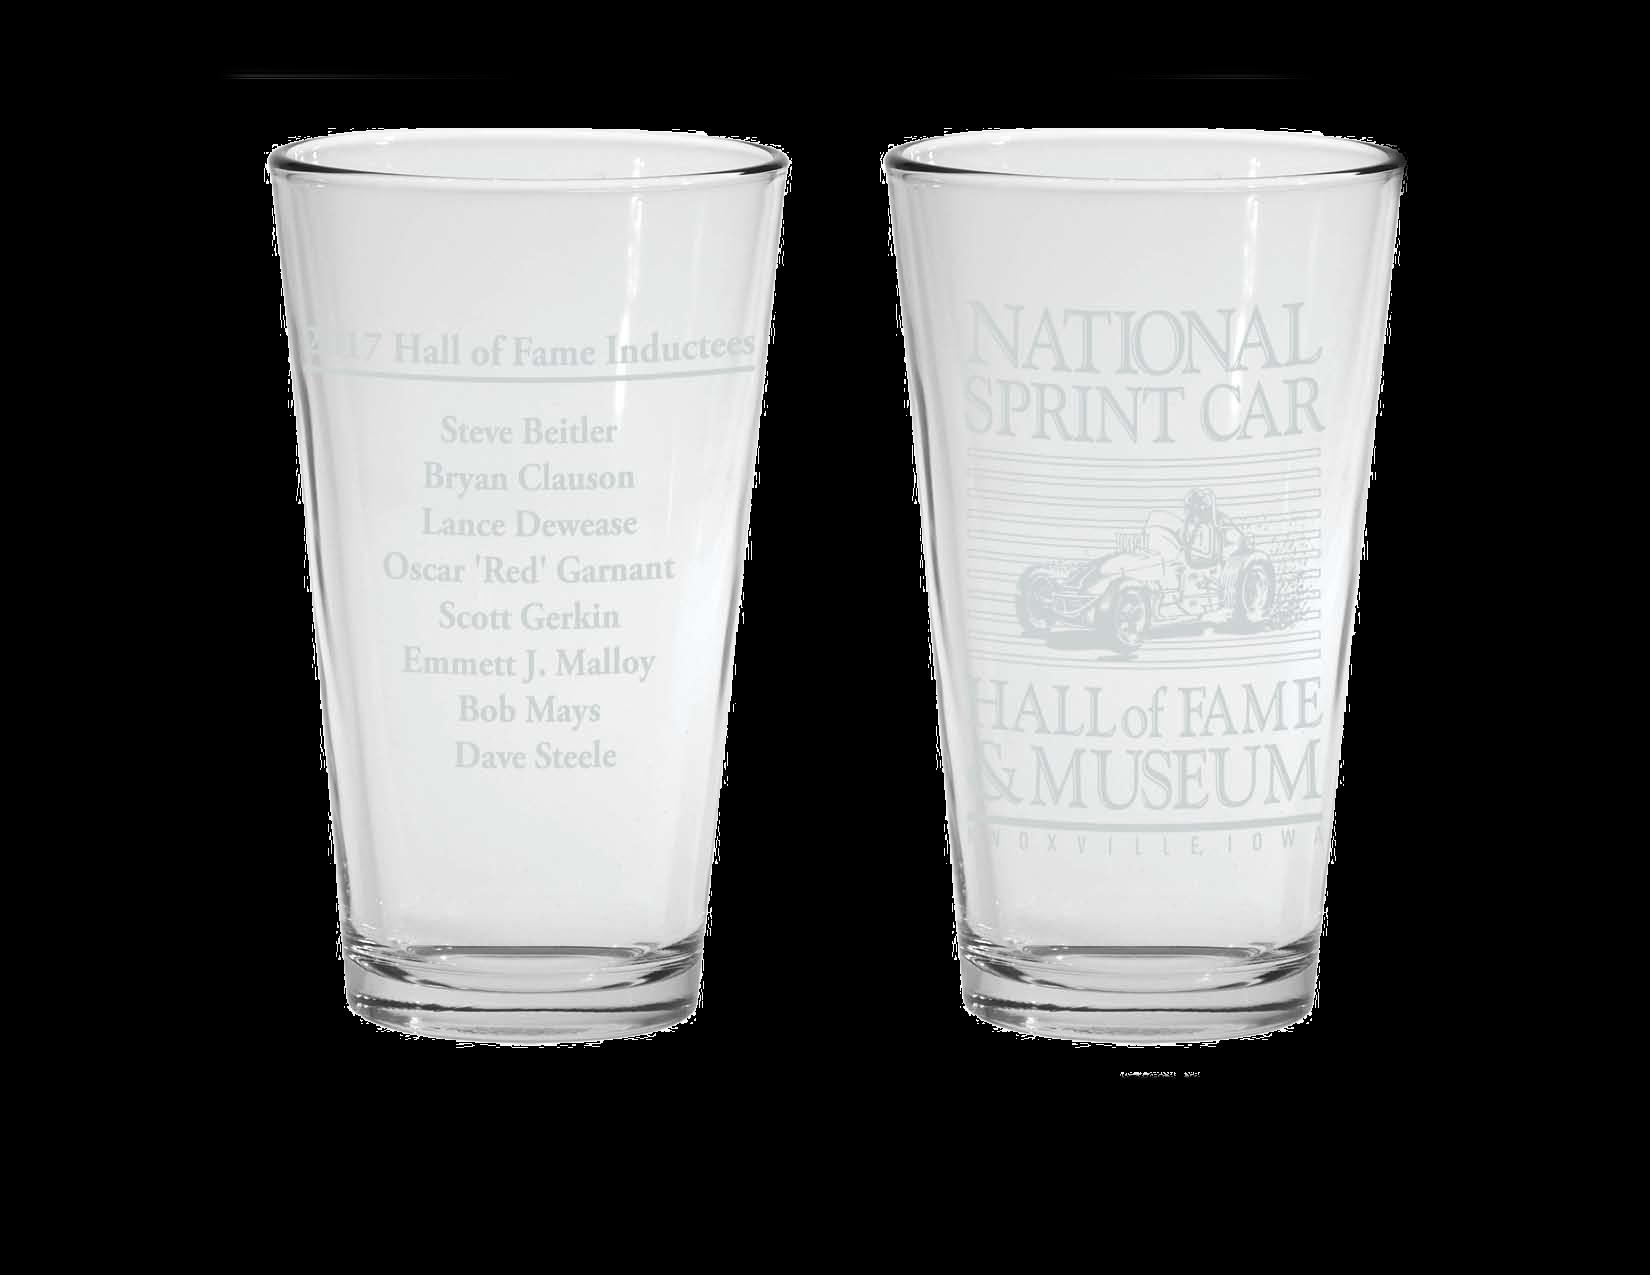 2018 National Sprint Car Hall of Fame  Induction Glasses